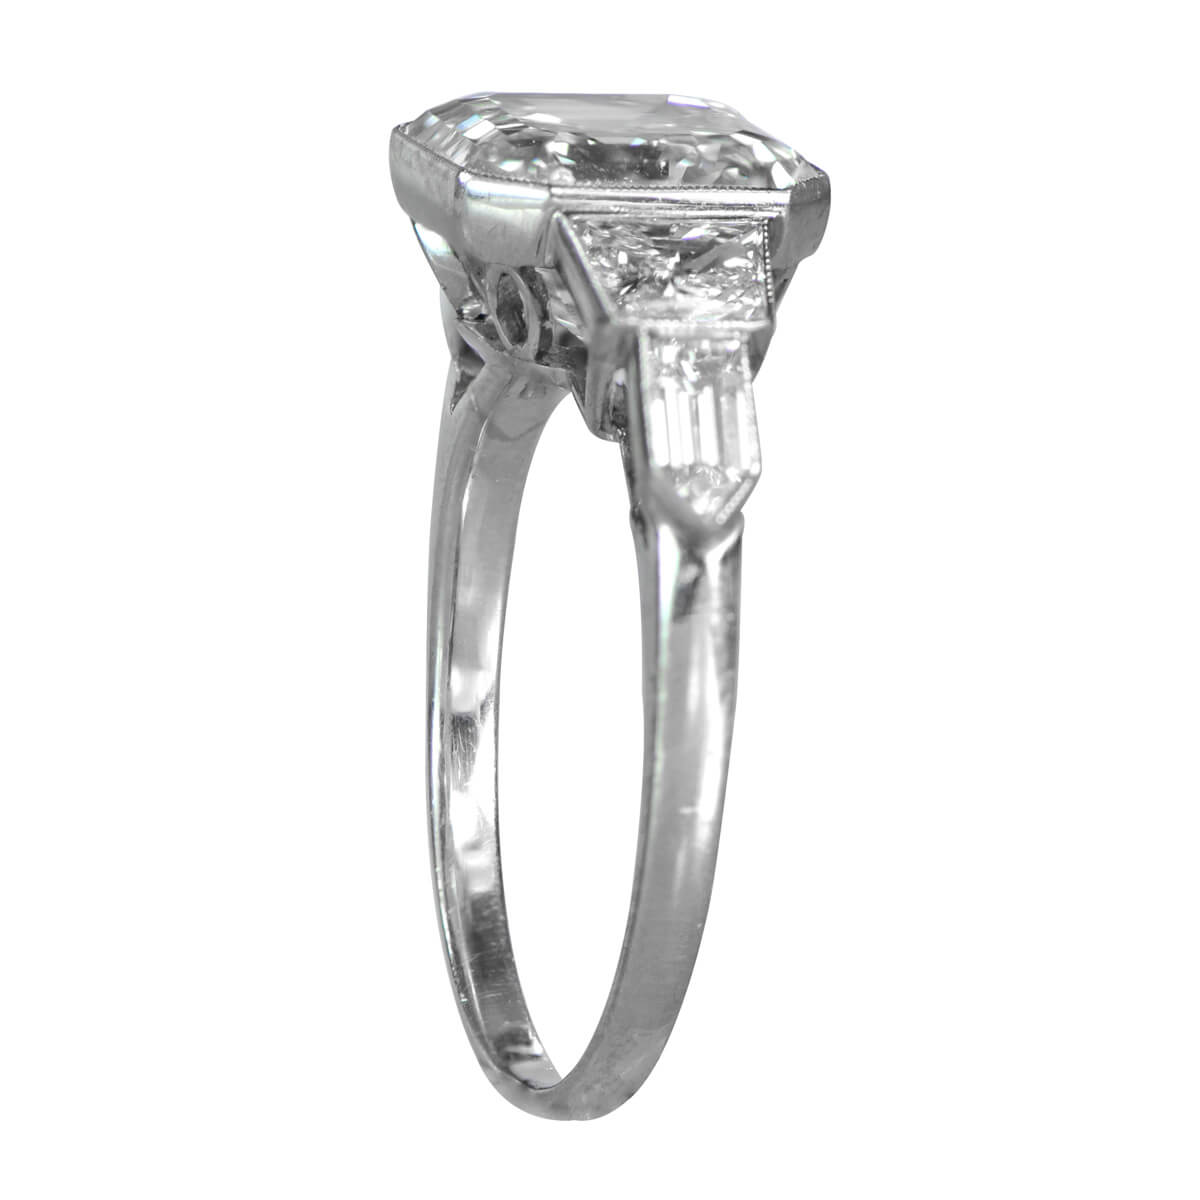 top cut product estate jewelry asscher side diamond vintage ring view